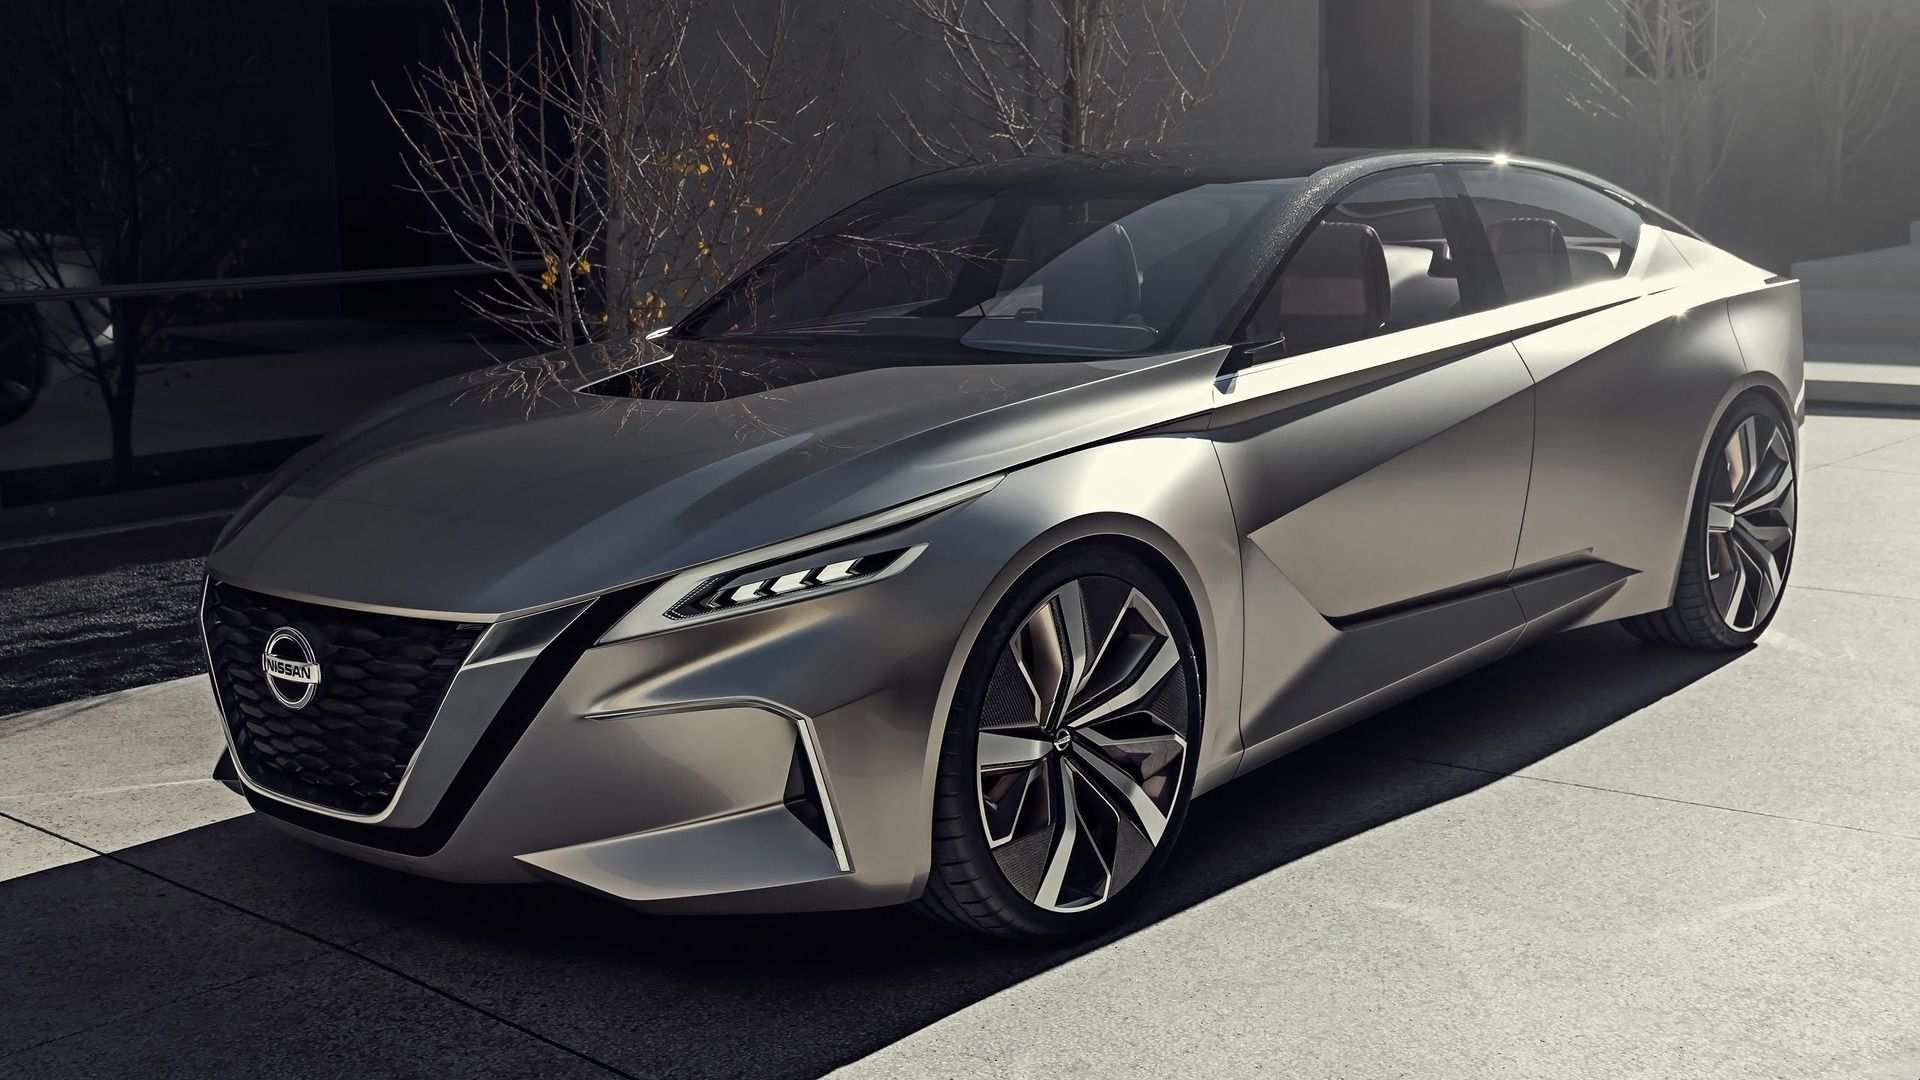 37 All New Nissan Maxima 2020 Price Redesign with Nissan Maxima 2020 Price